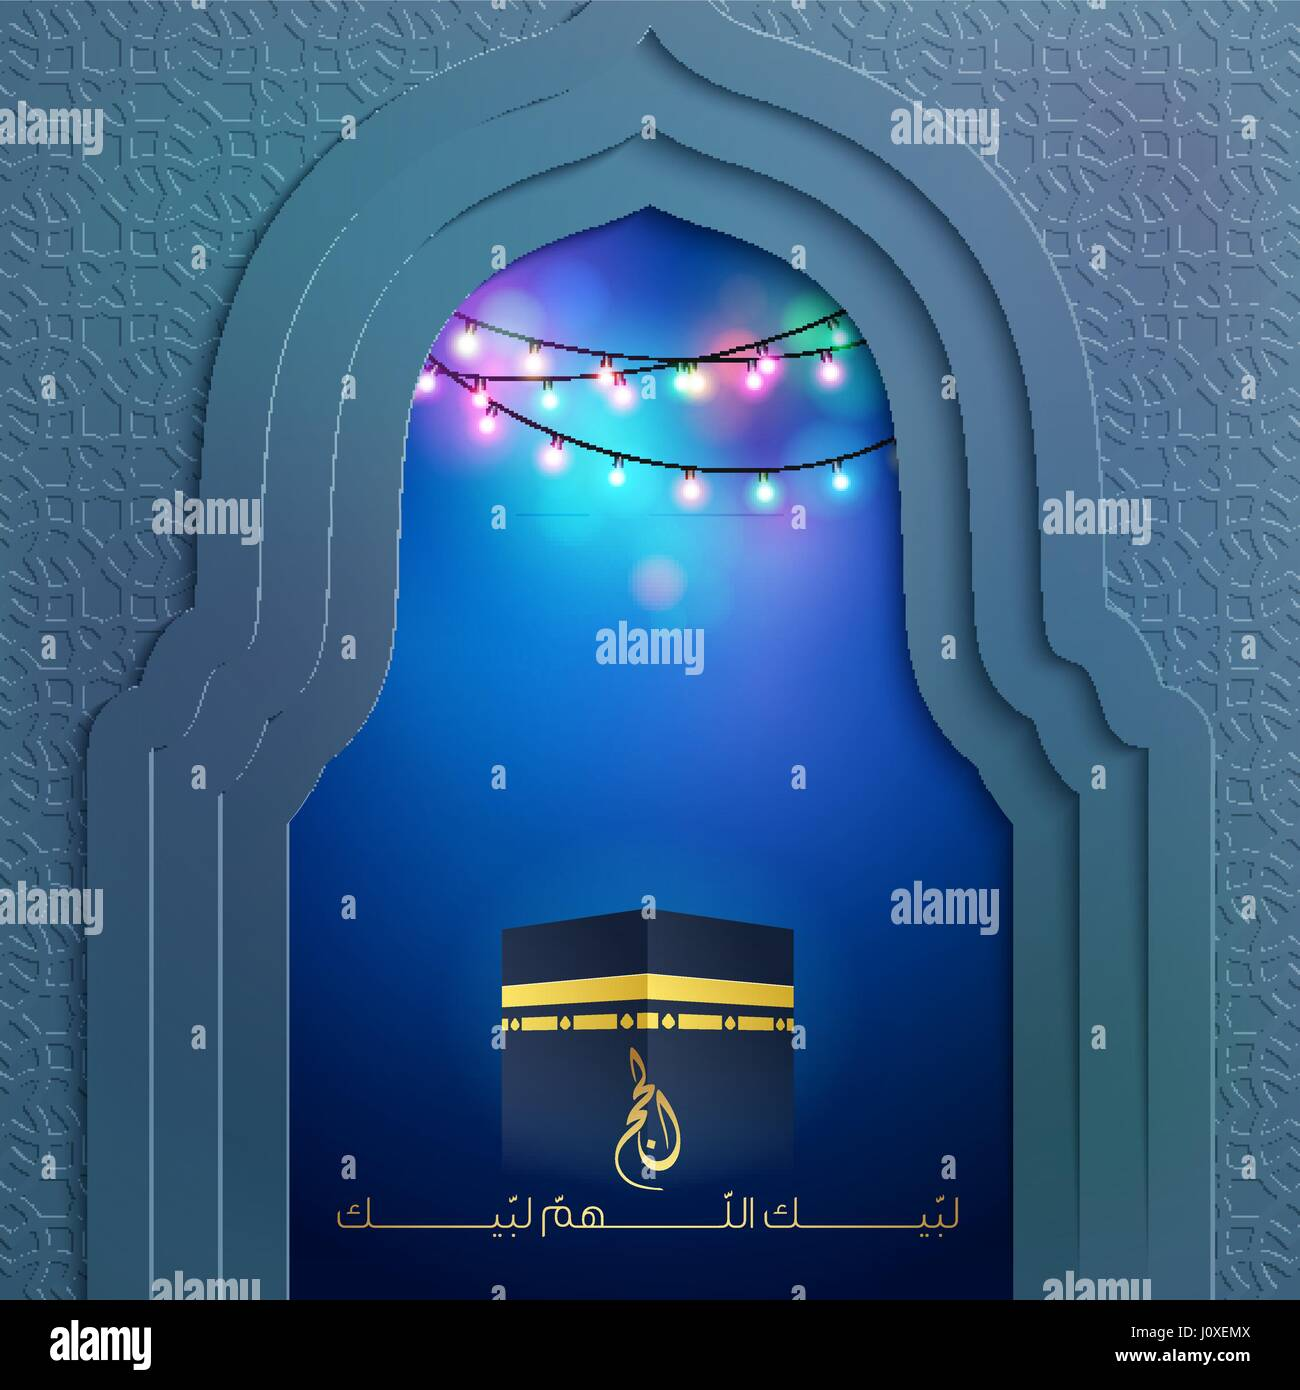 Islamic design background mosque door and kaaba with geometric pattern for Hajj greeting : masjid door vector - pezcame.com